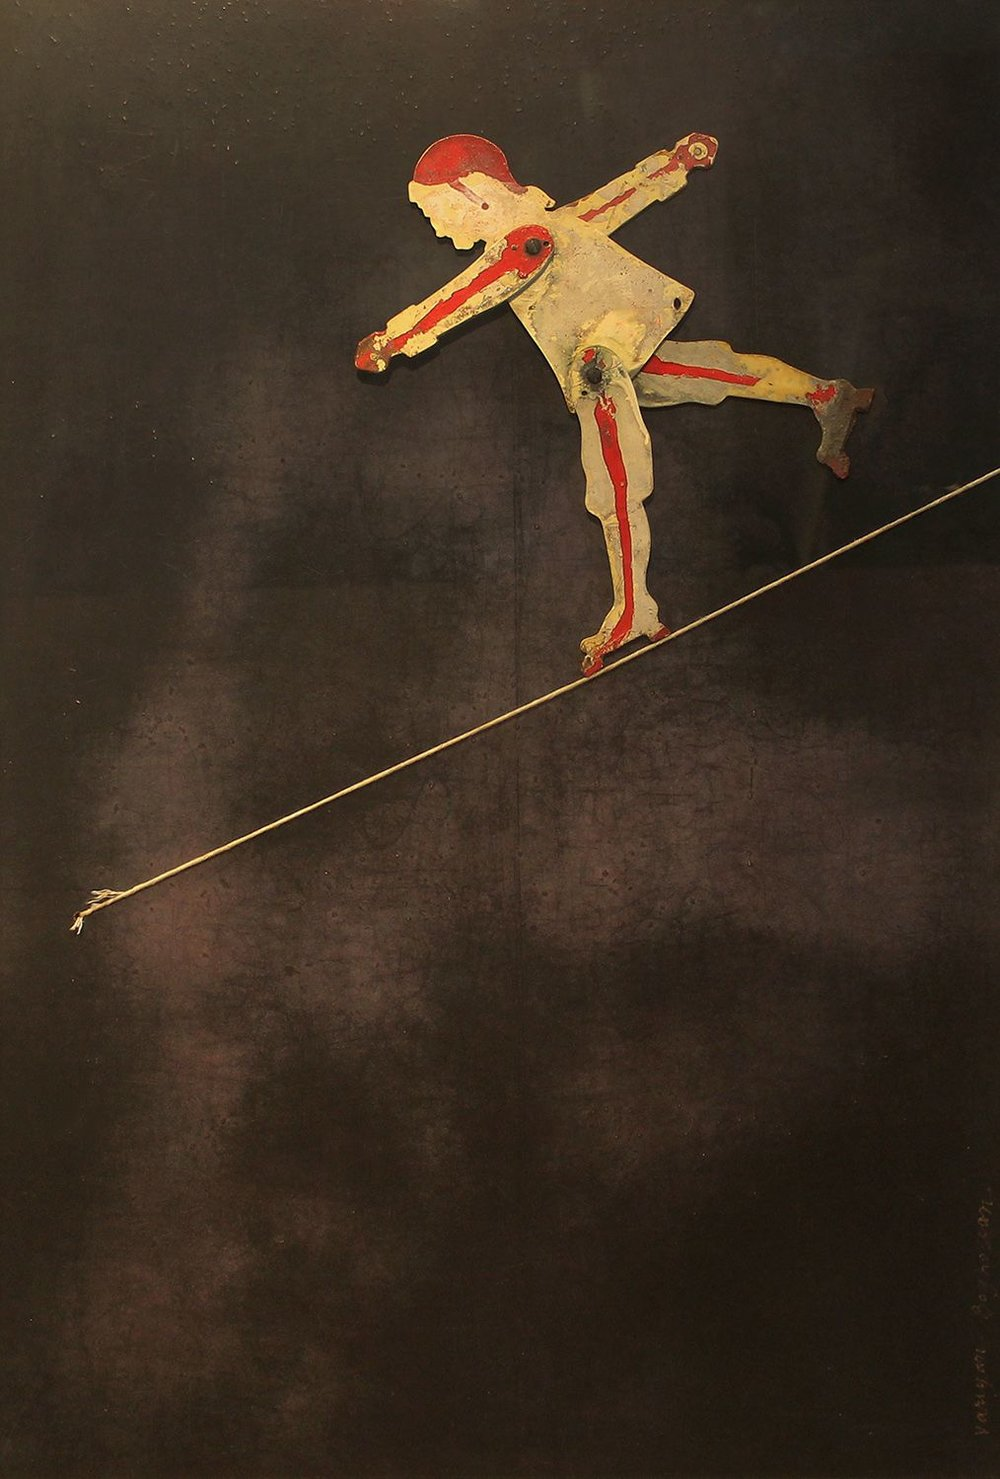 Tight Rope Walker (c. 2000)